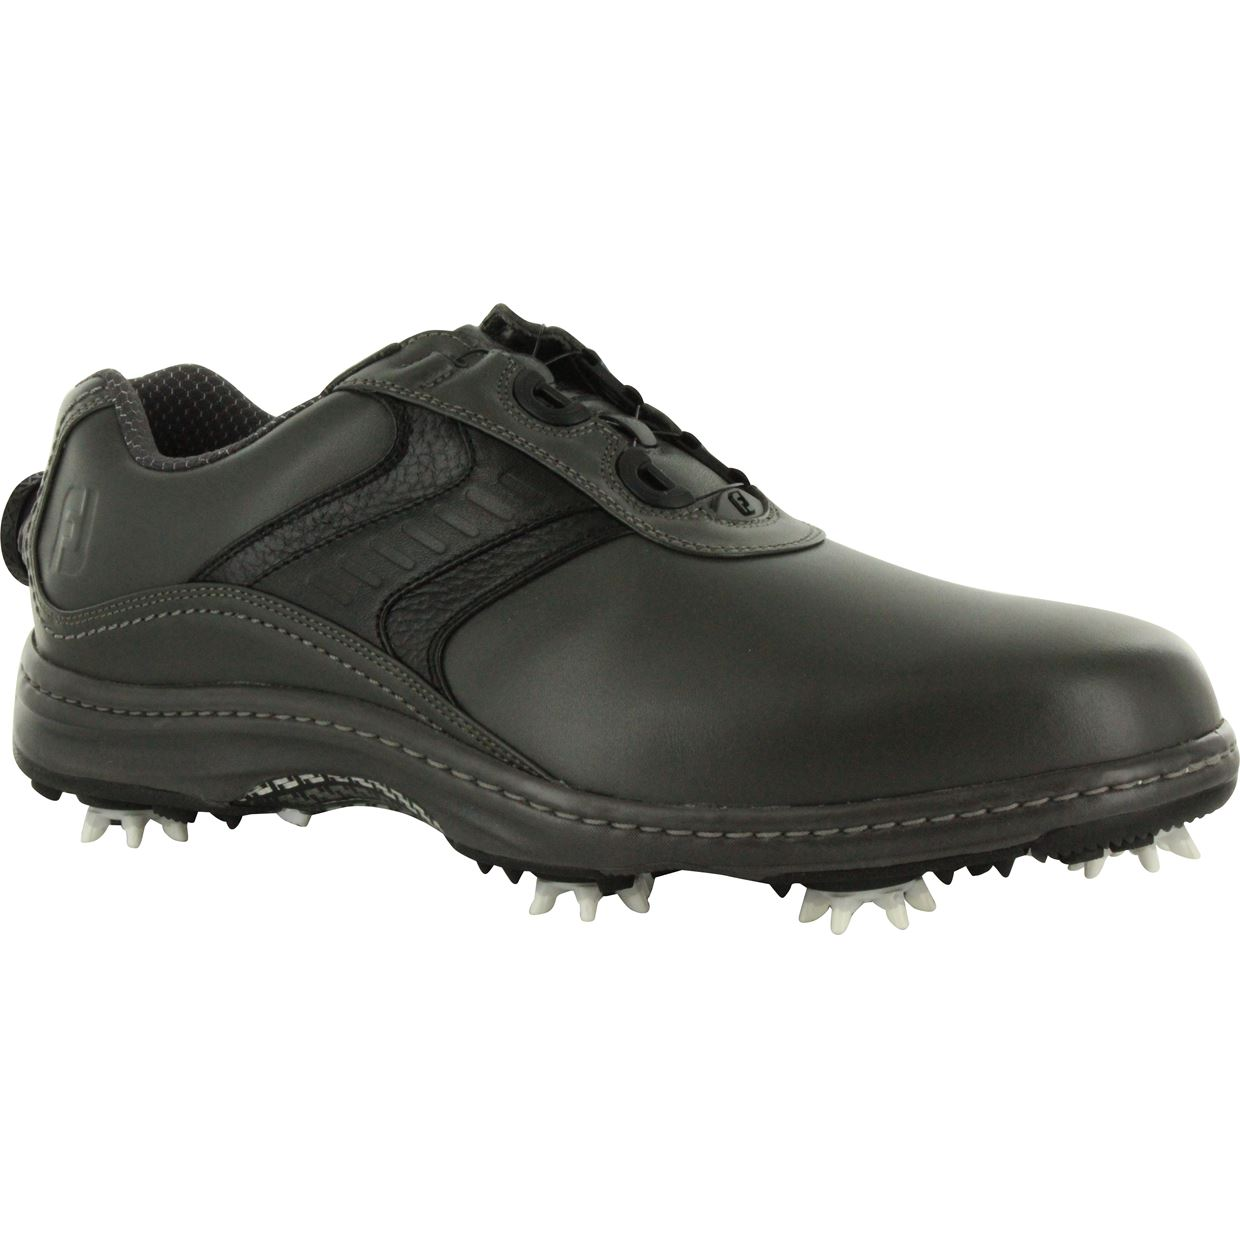 Footjoy Contour Boa Golf Shoes | New Style for 2016-2017